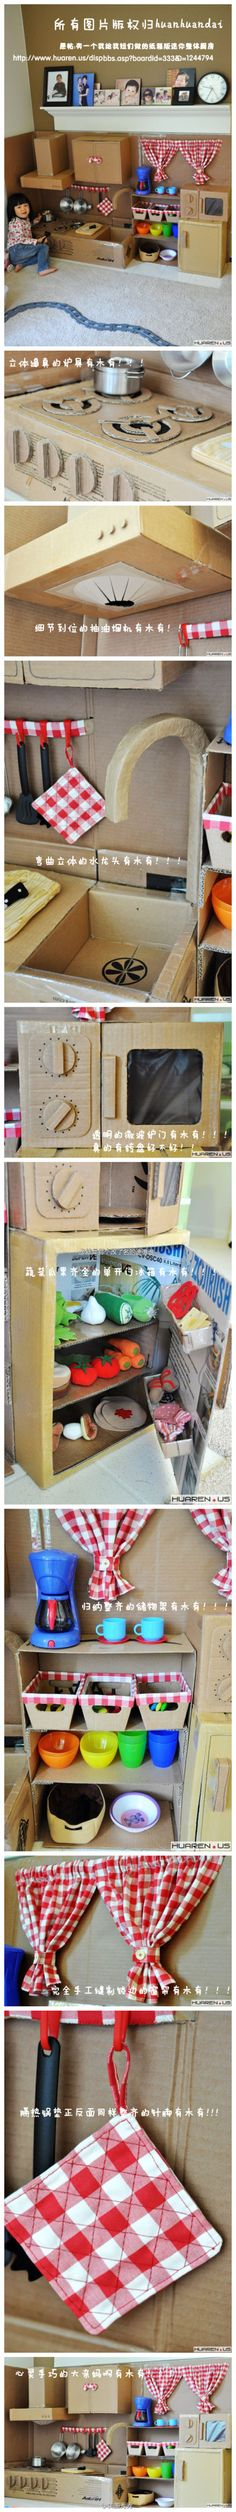 A mom made a playing kitchen with cardboard for daughter, impressive details :O